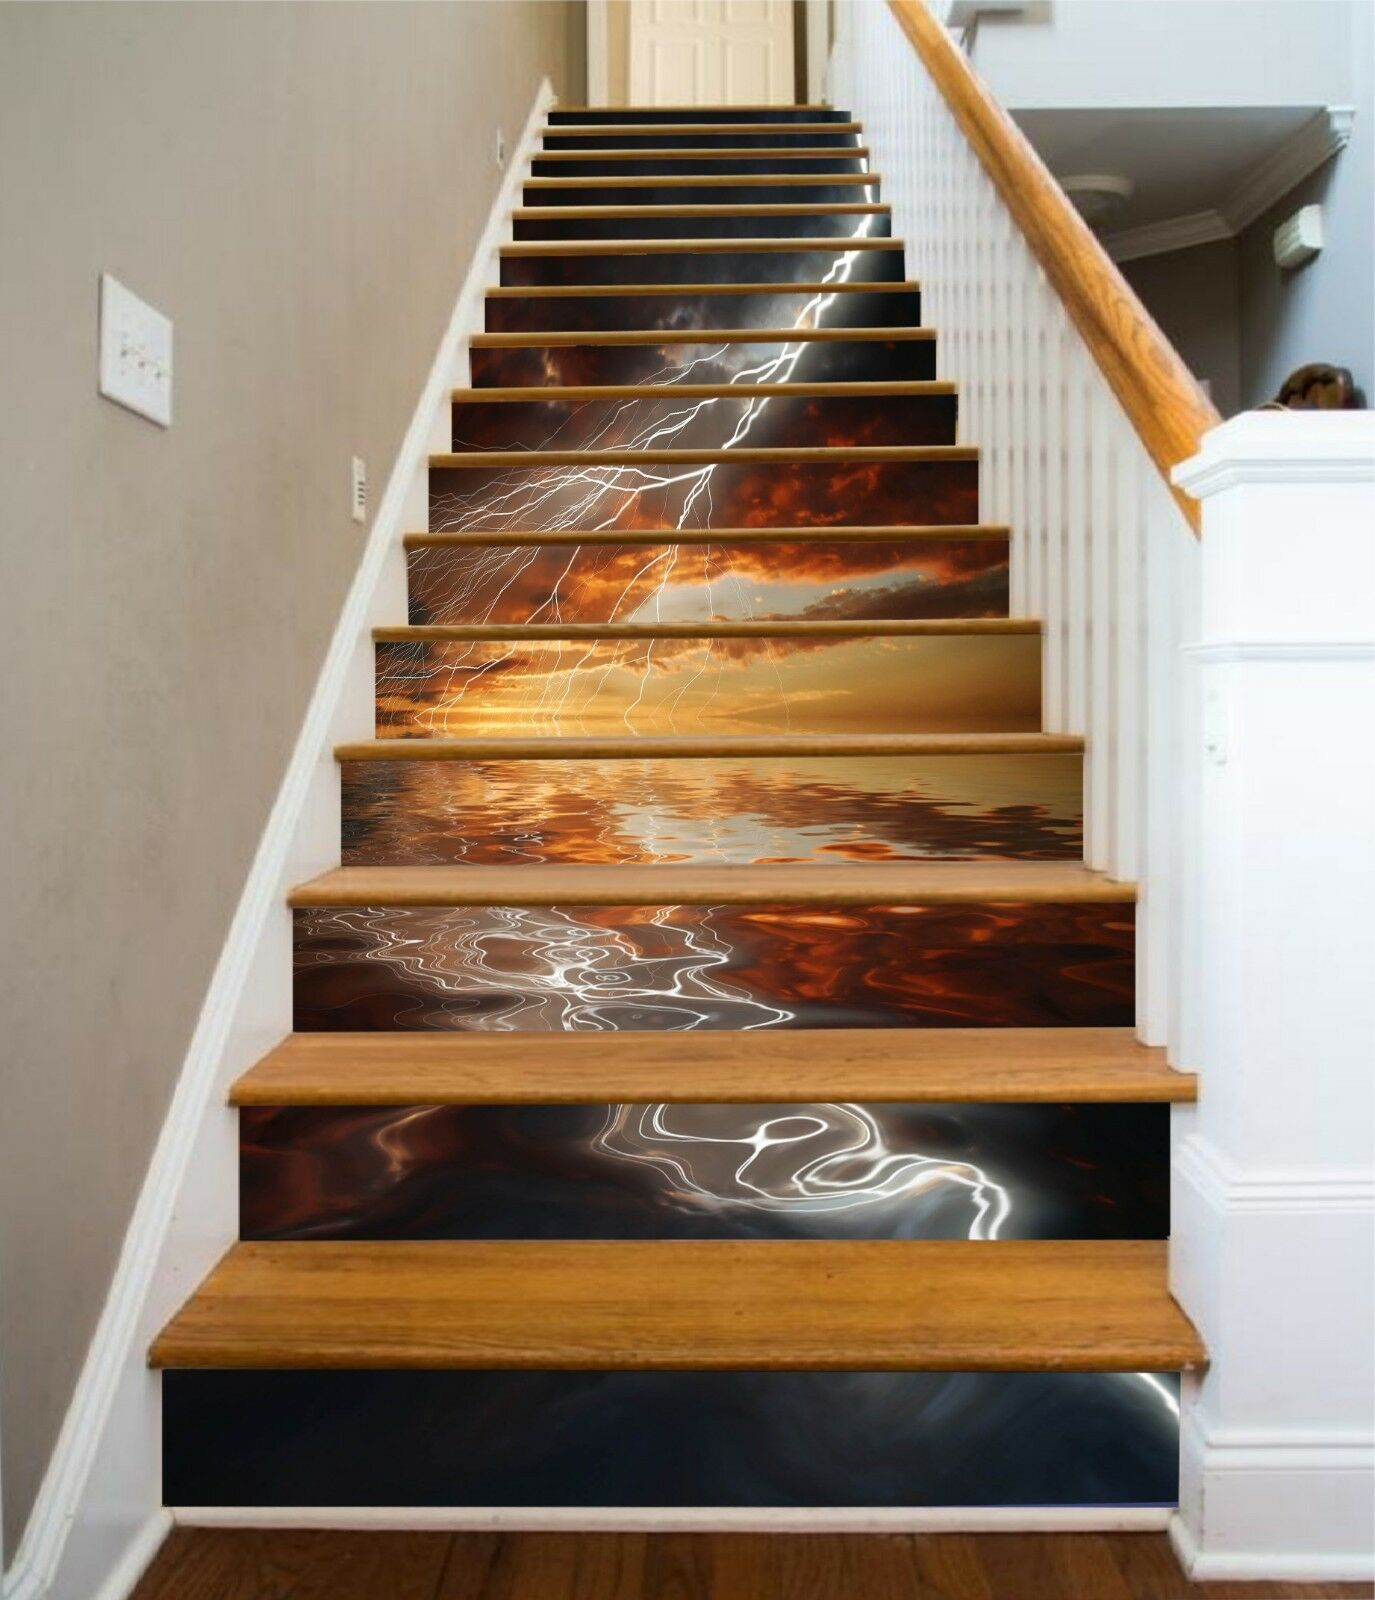 3D Lightning Sunset Stair Risers Decoration Photo Mural Vinyl Decal Wallpaper US